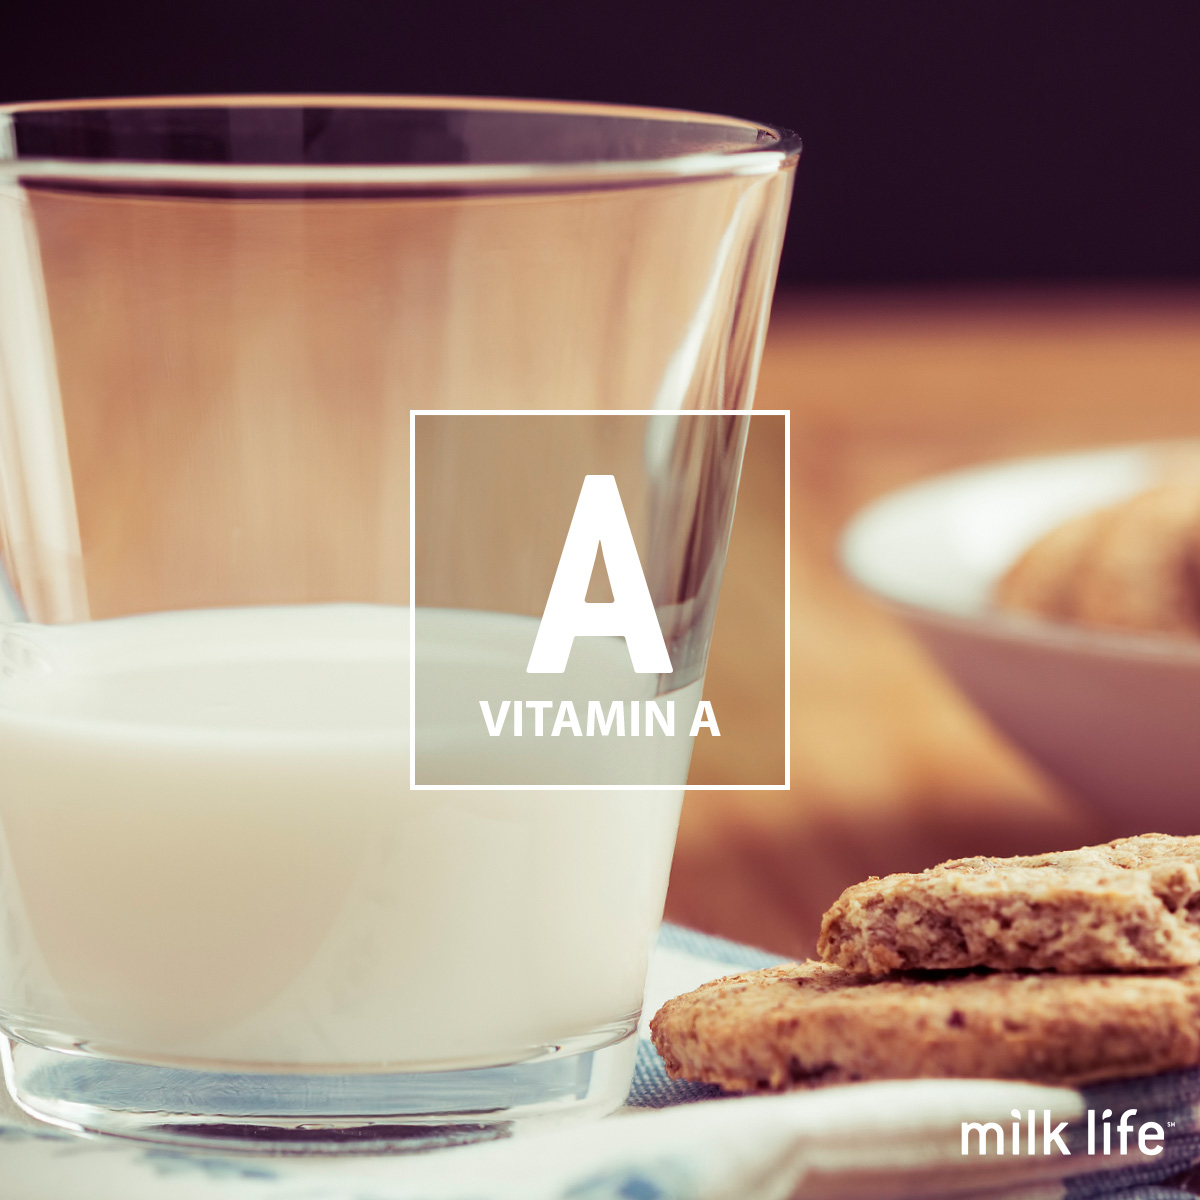 Vitamin A is a nutrient in milk